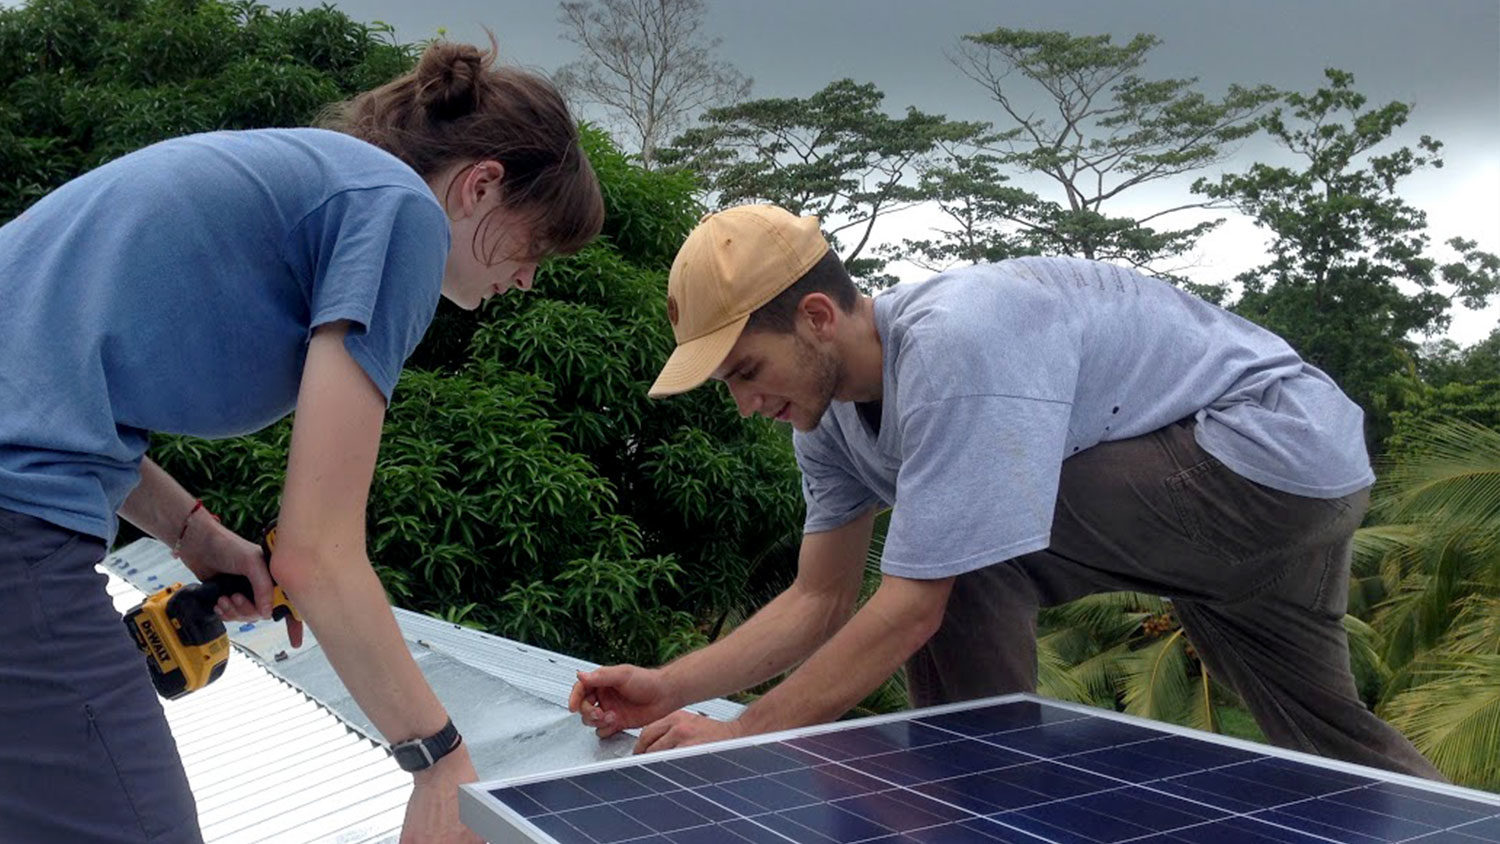 Students installing solar panels - Interdisciplinary Graduate Degrees - College of Natural Resources at NC State University